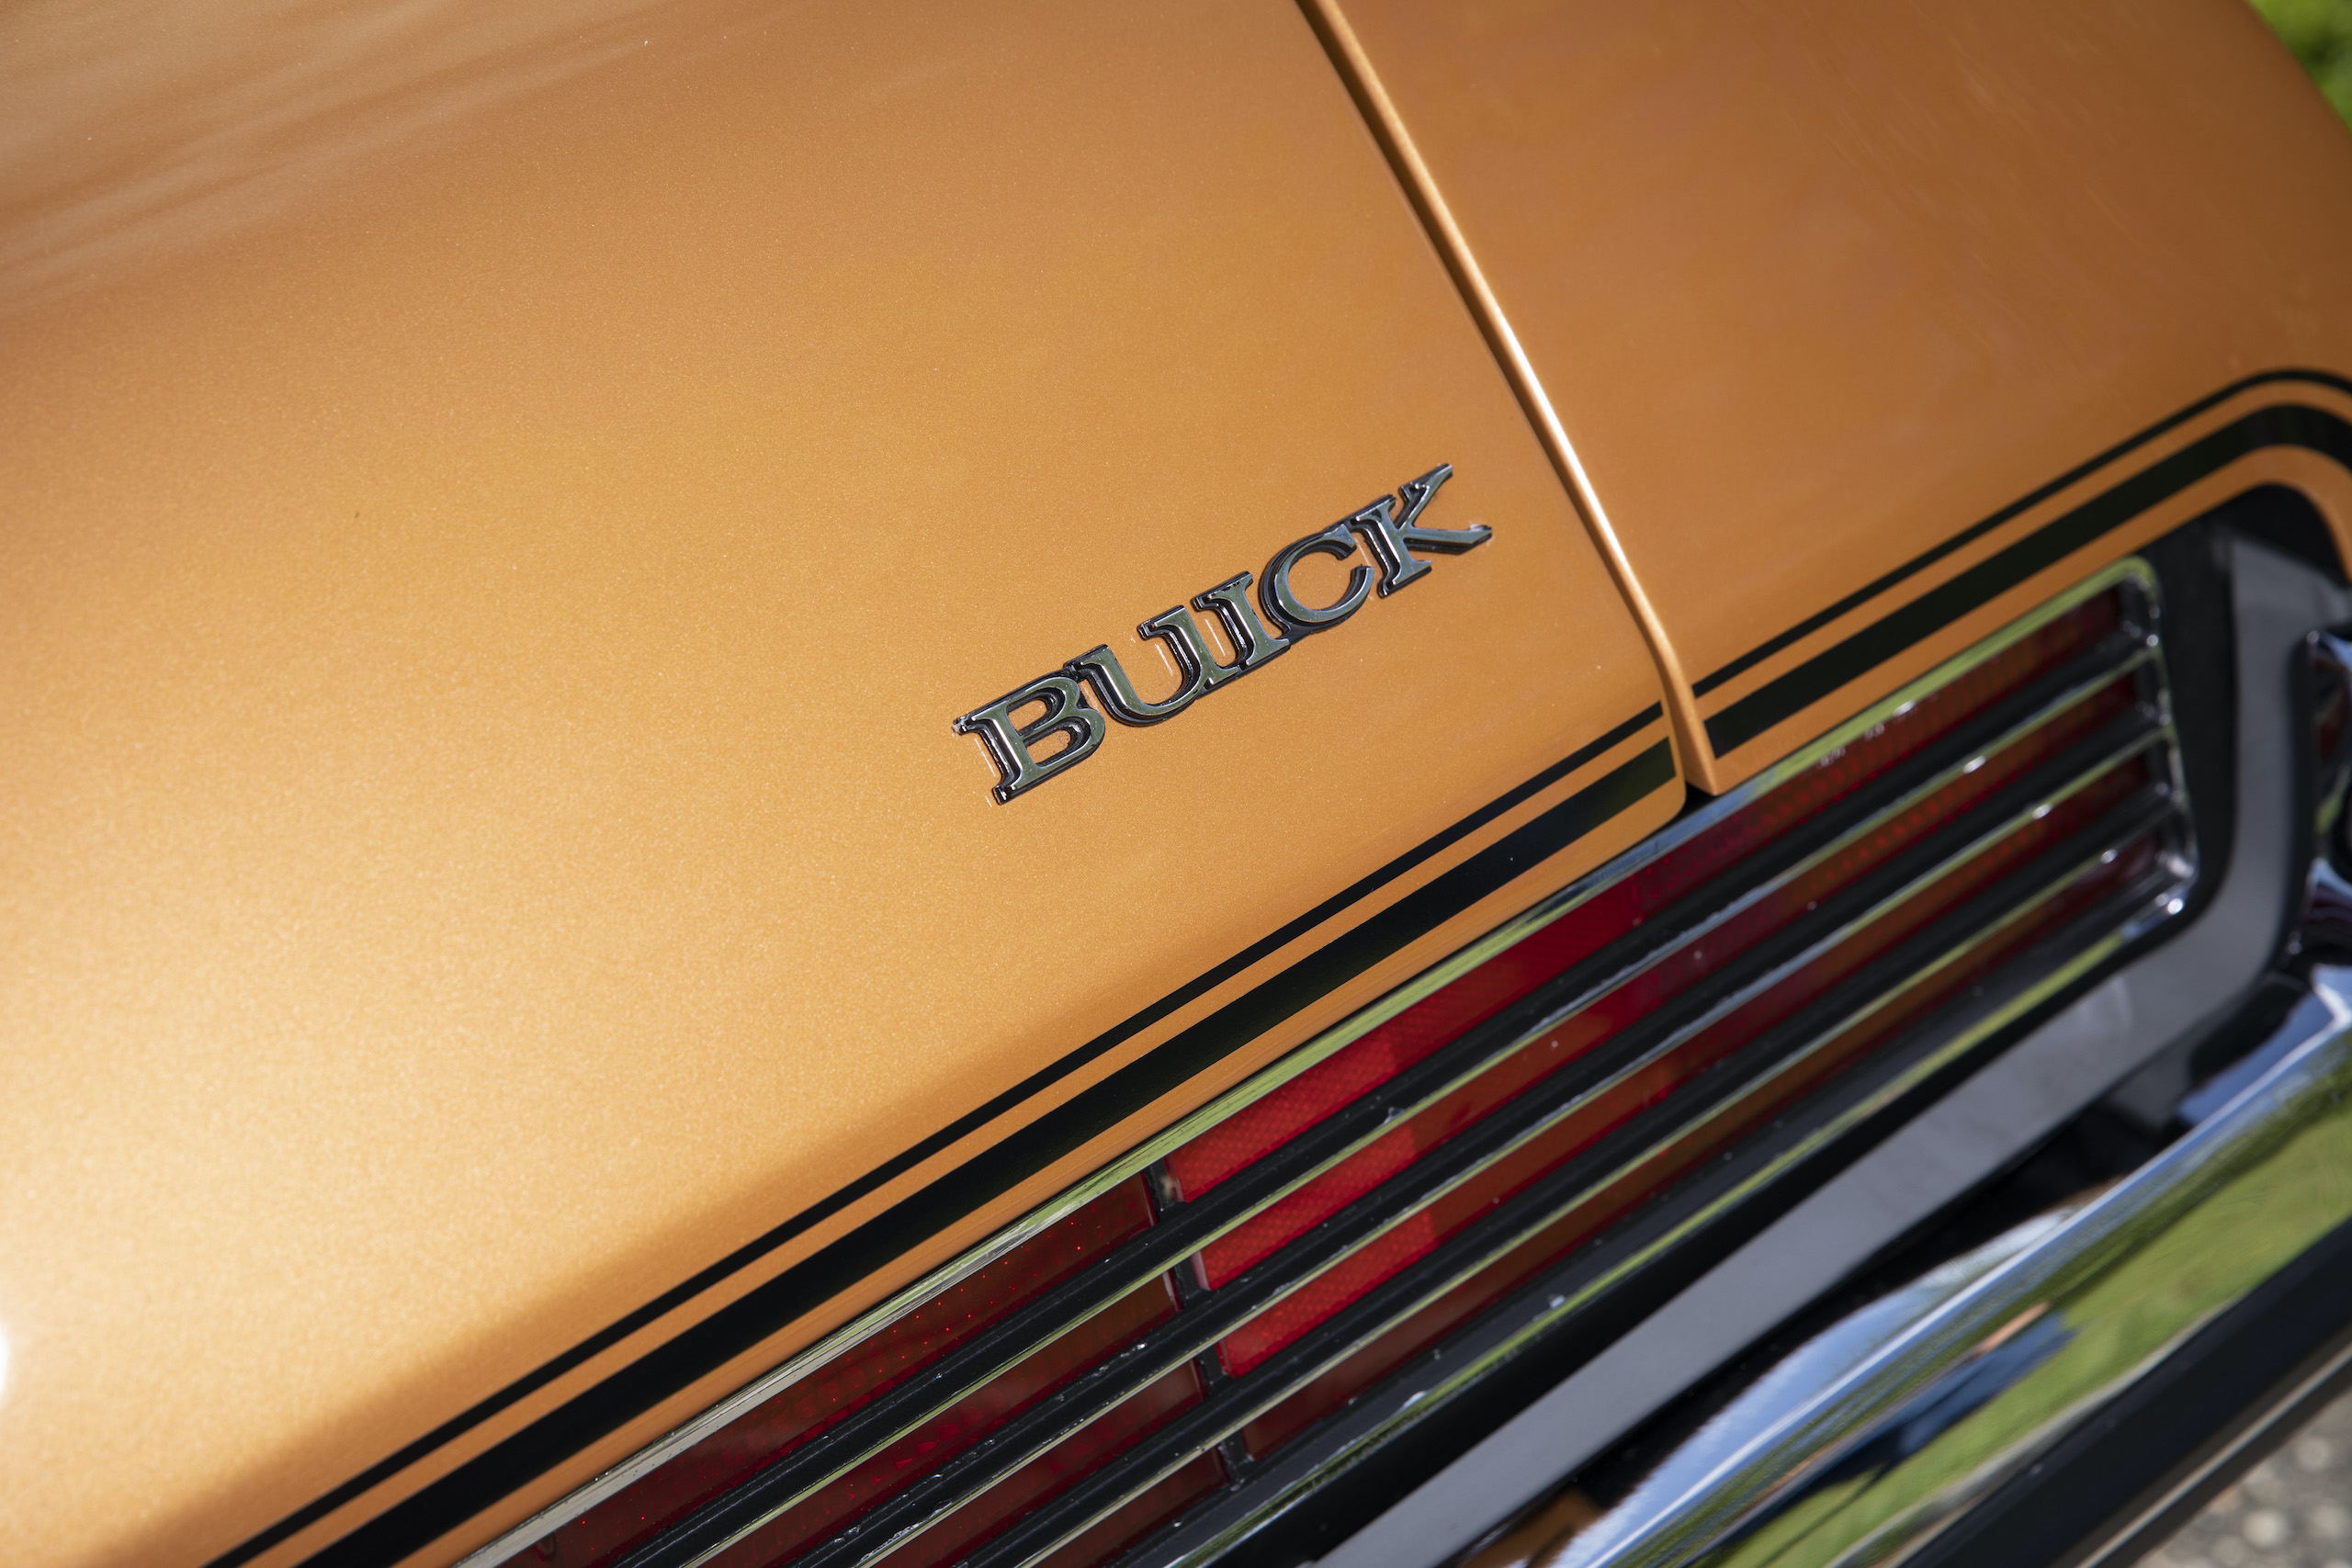 1973 Buick GS Stage 1 gran sport coupe buick badge